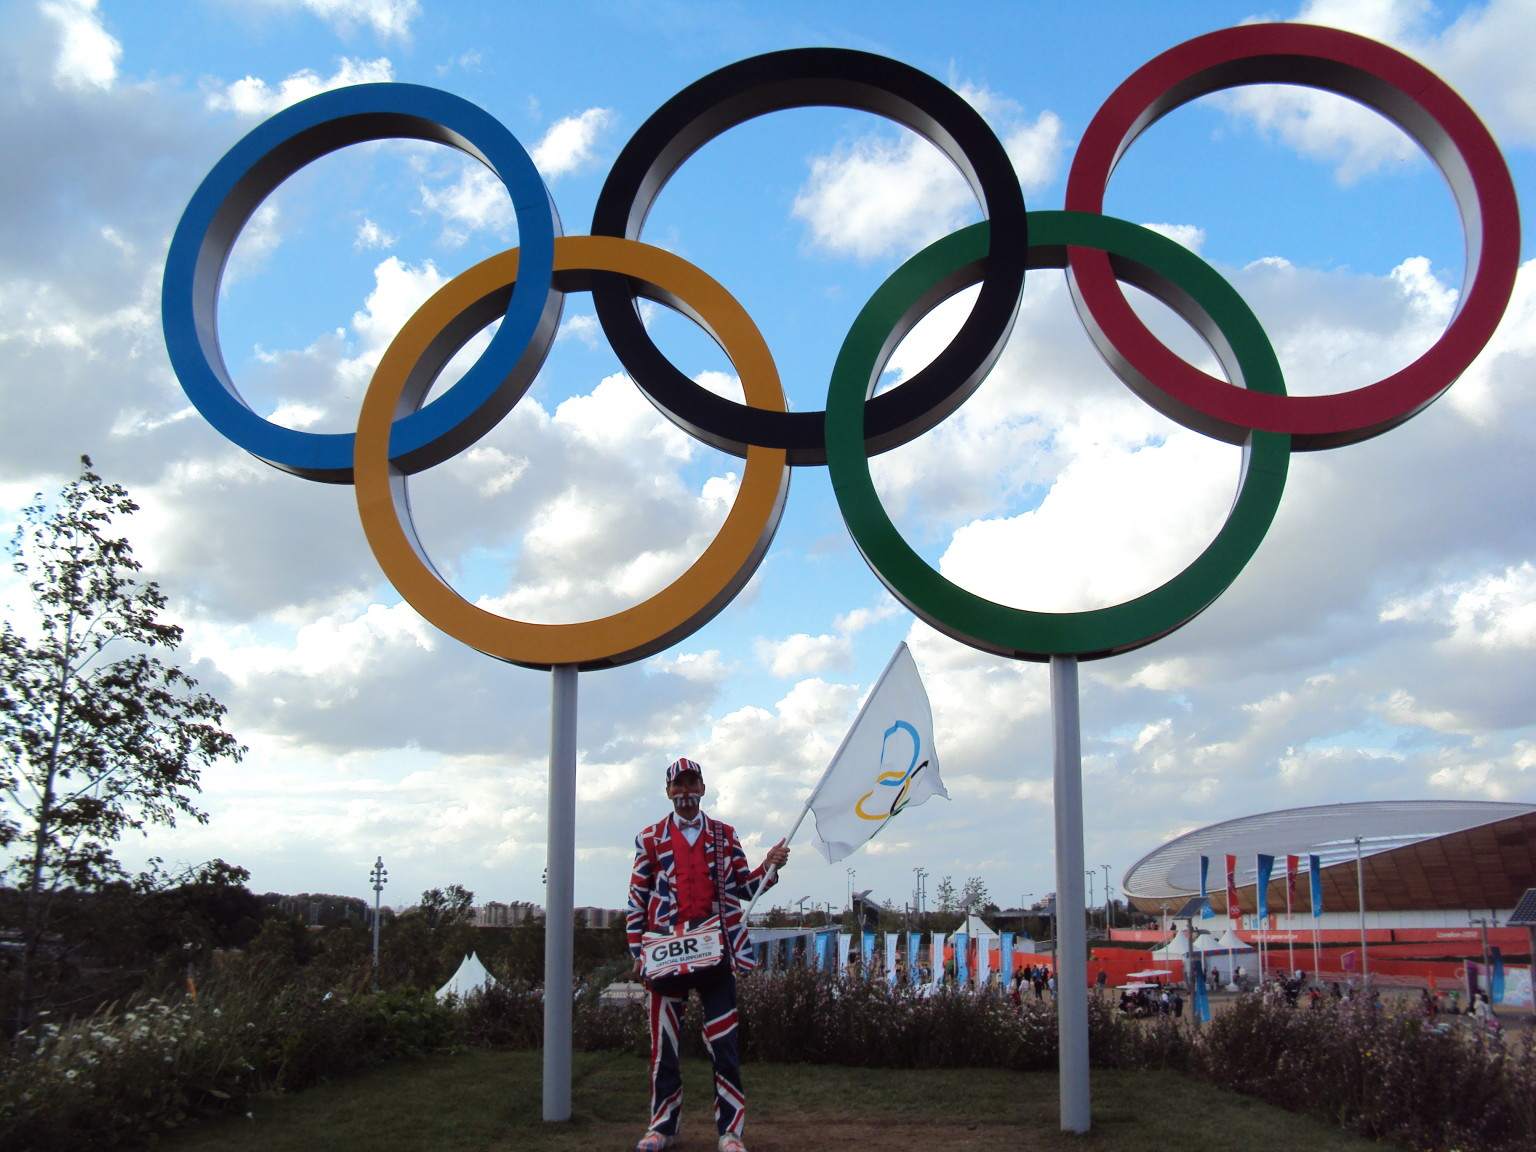 2020 Olympics To Be Hosted By Tokyo Olympic Rings 2020